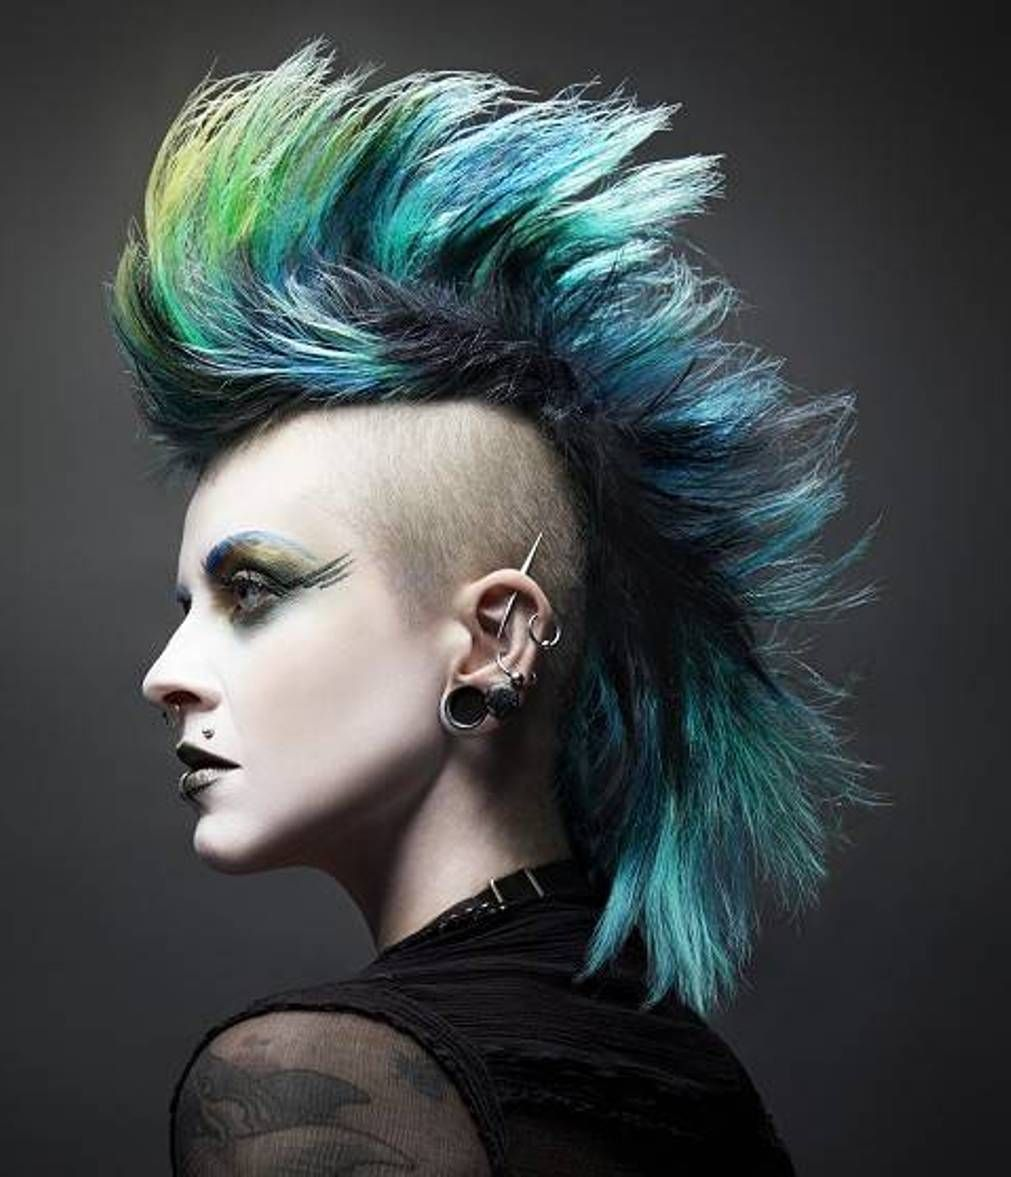 mohawk punk hairstyles for women - http://hairstylee.com/mohawk